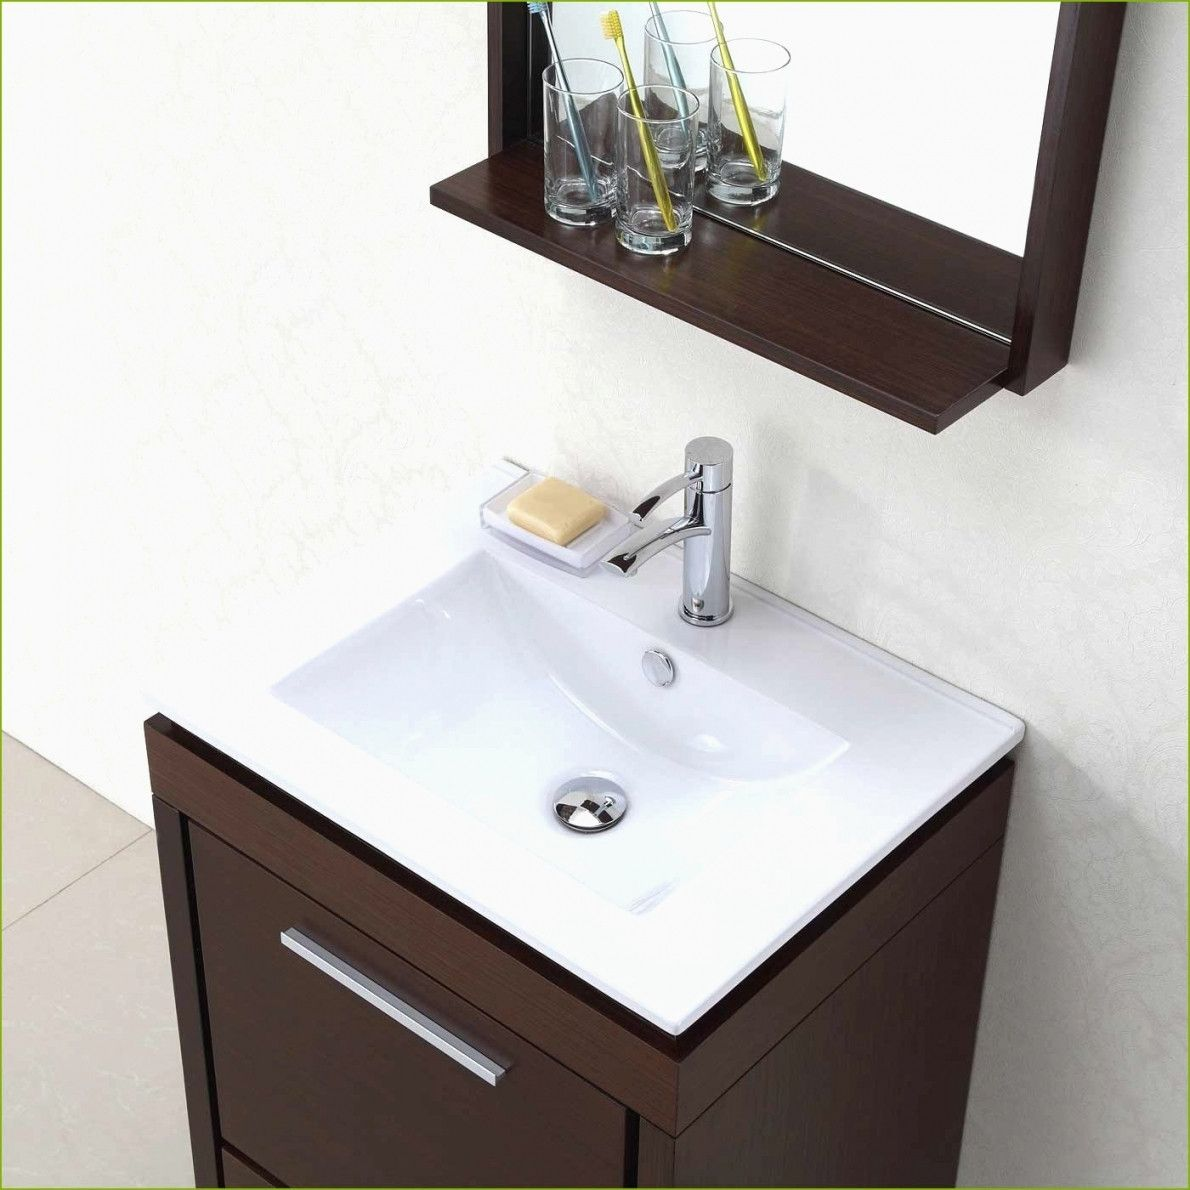 20+ Bathroom Cabinets Clearance - Best Interior Wall Paint Check ...